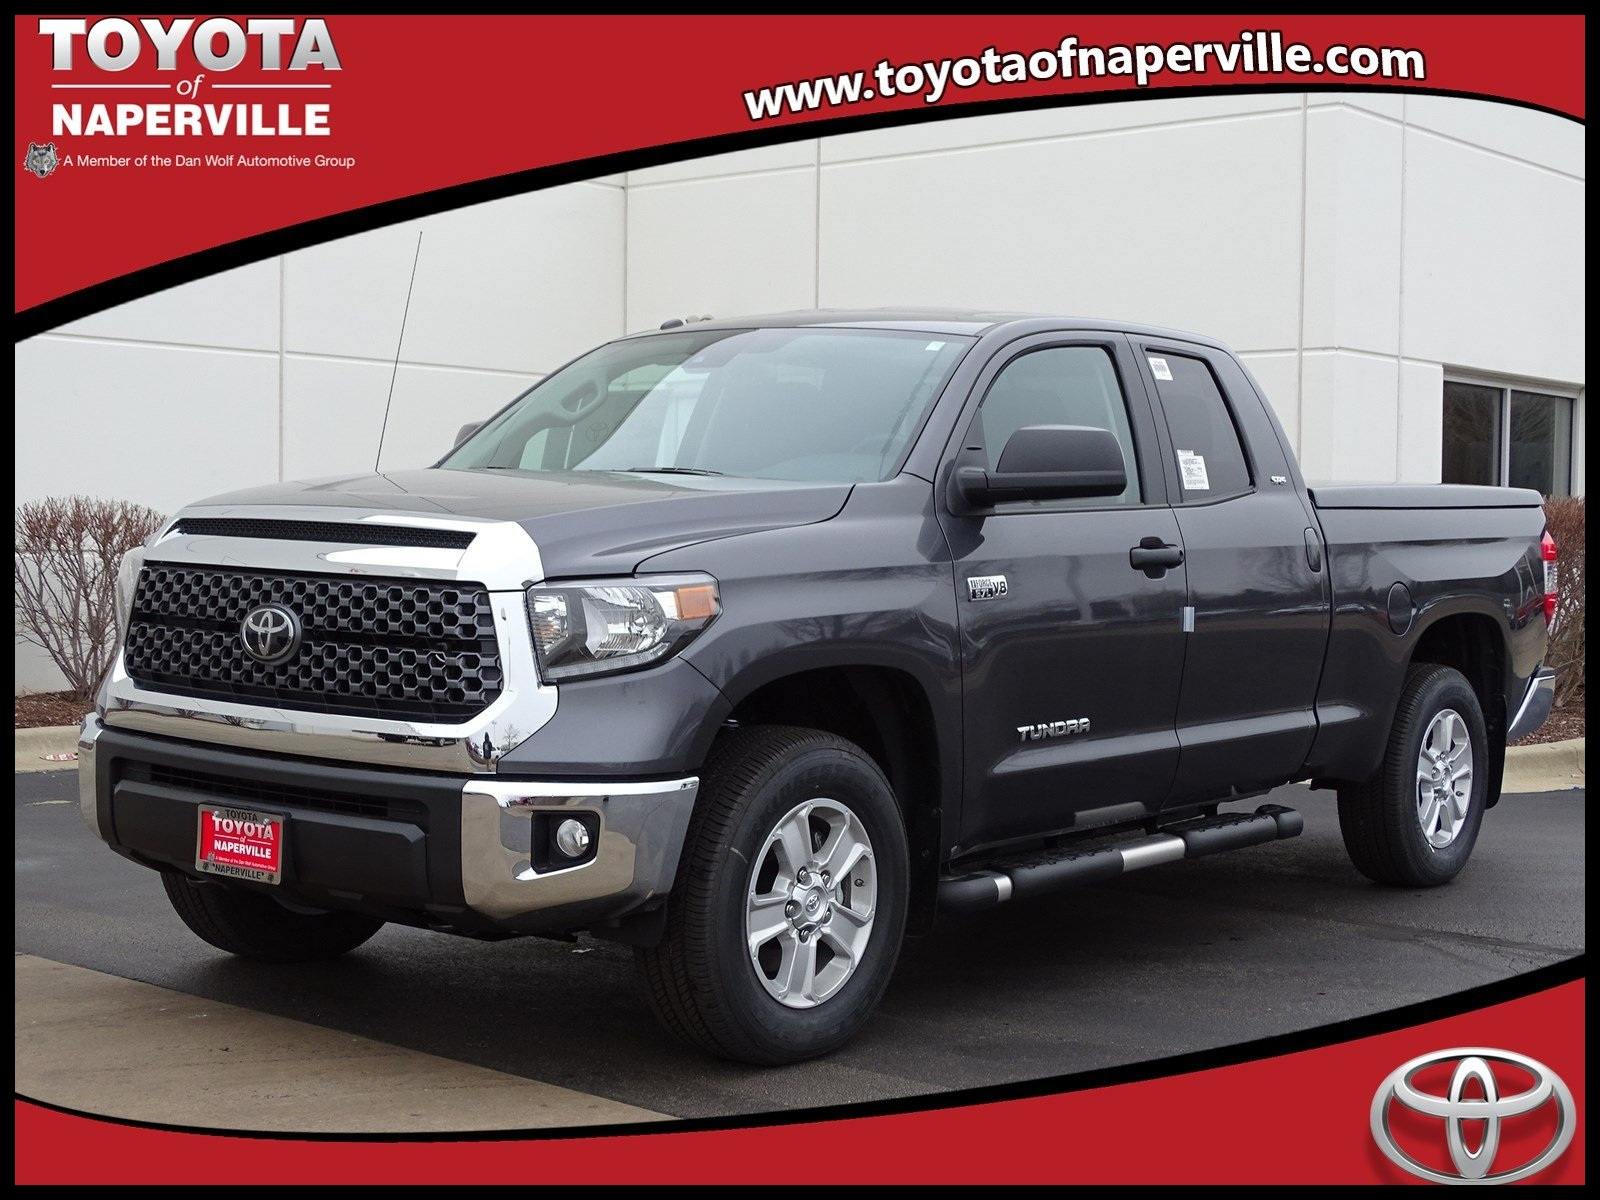 Hot New 2018 toyota Tundra Sr5 4d Double Cab In Naperville T Reviews and